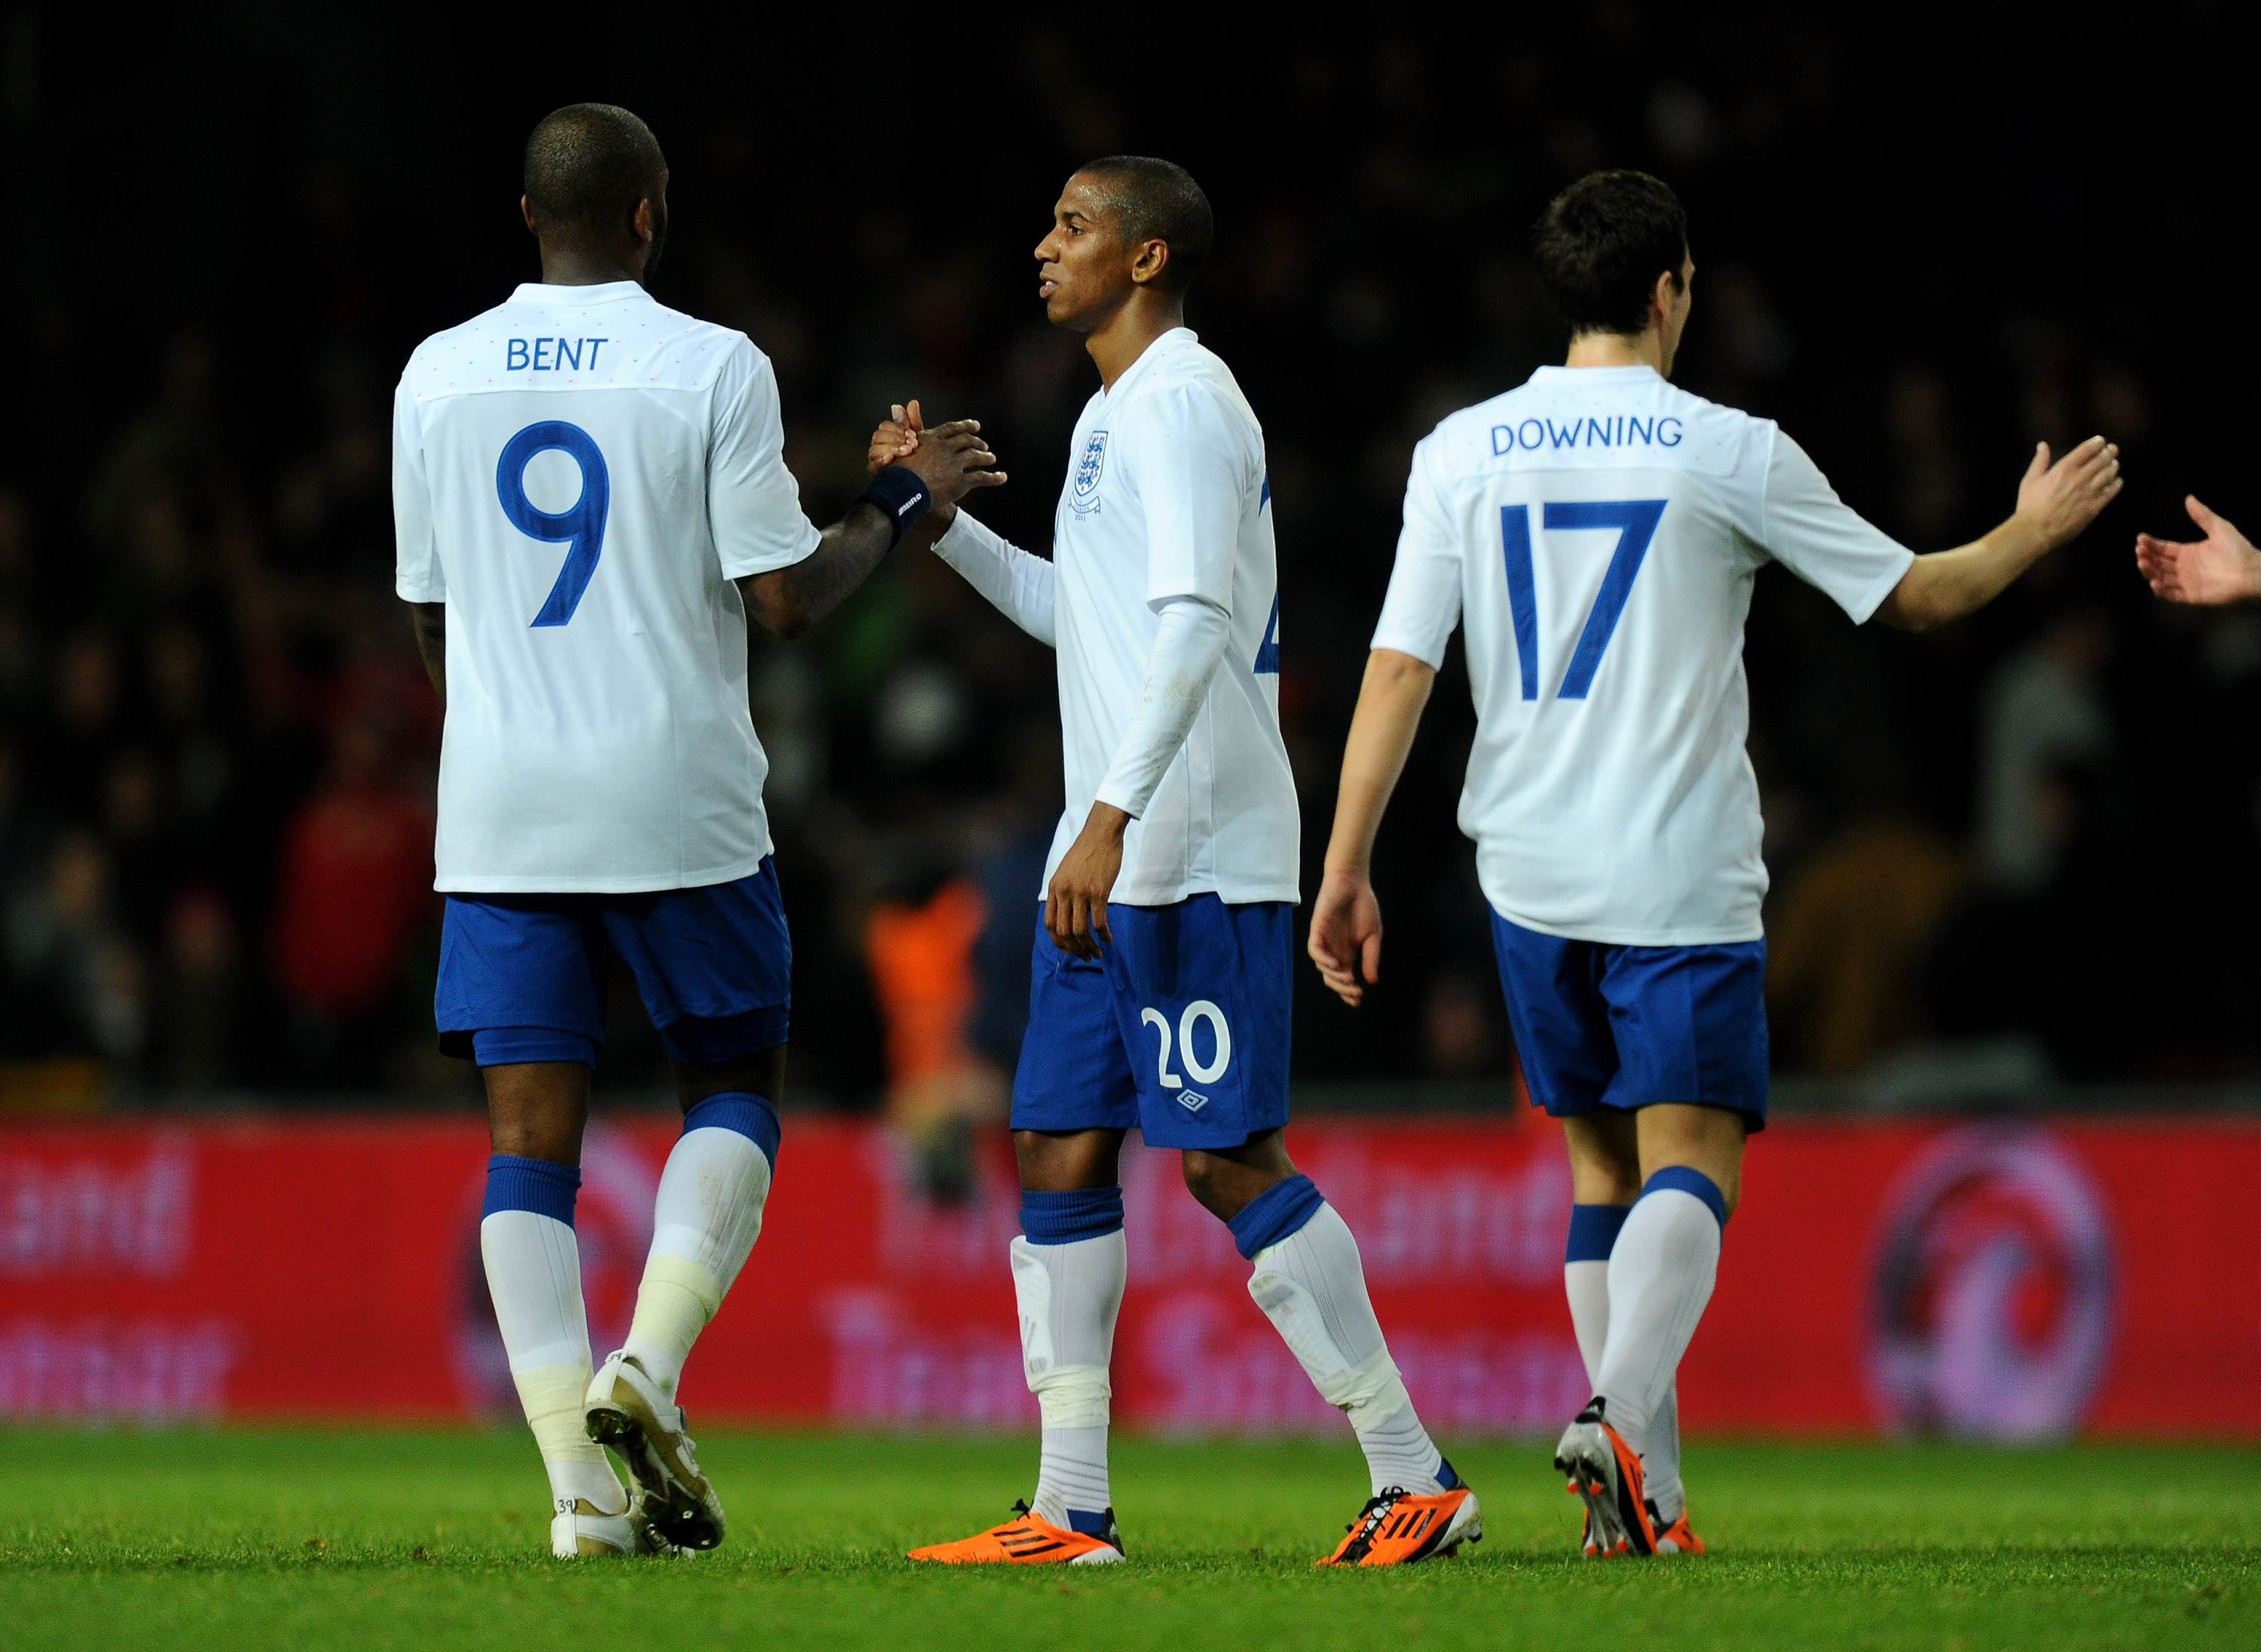 COPENHAGEN, DENMARK - FEBRUARY 09:  Ashley Young of England is congratulated by team mate Darren Bent after scoring his team's second goal during the International Friendly match between Denmark and England at Parken Stadium on February 9, 2011 in Copenha